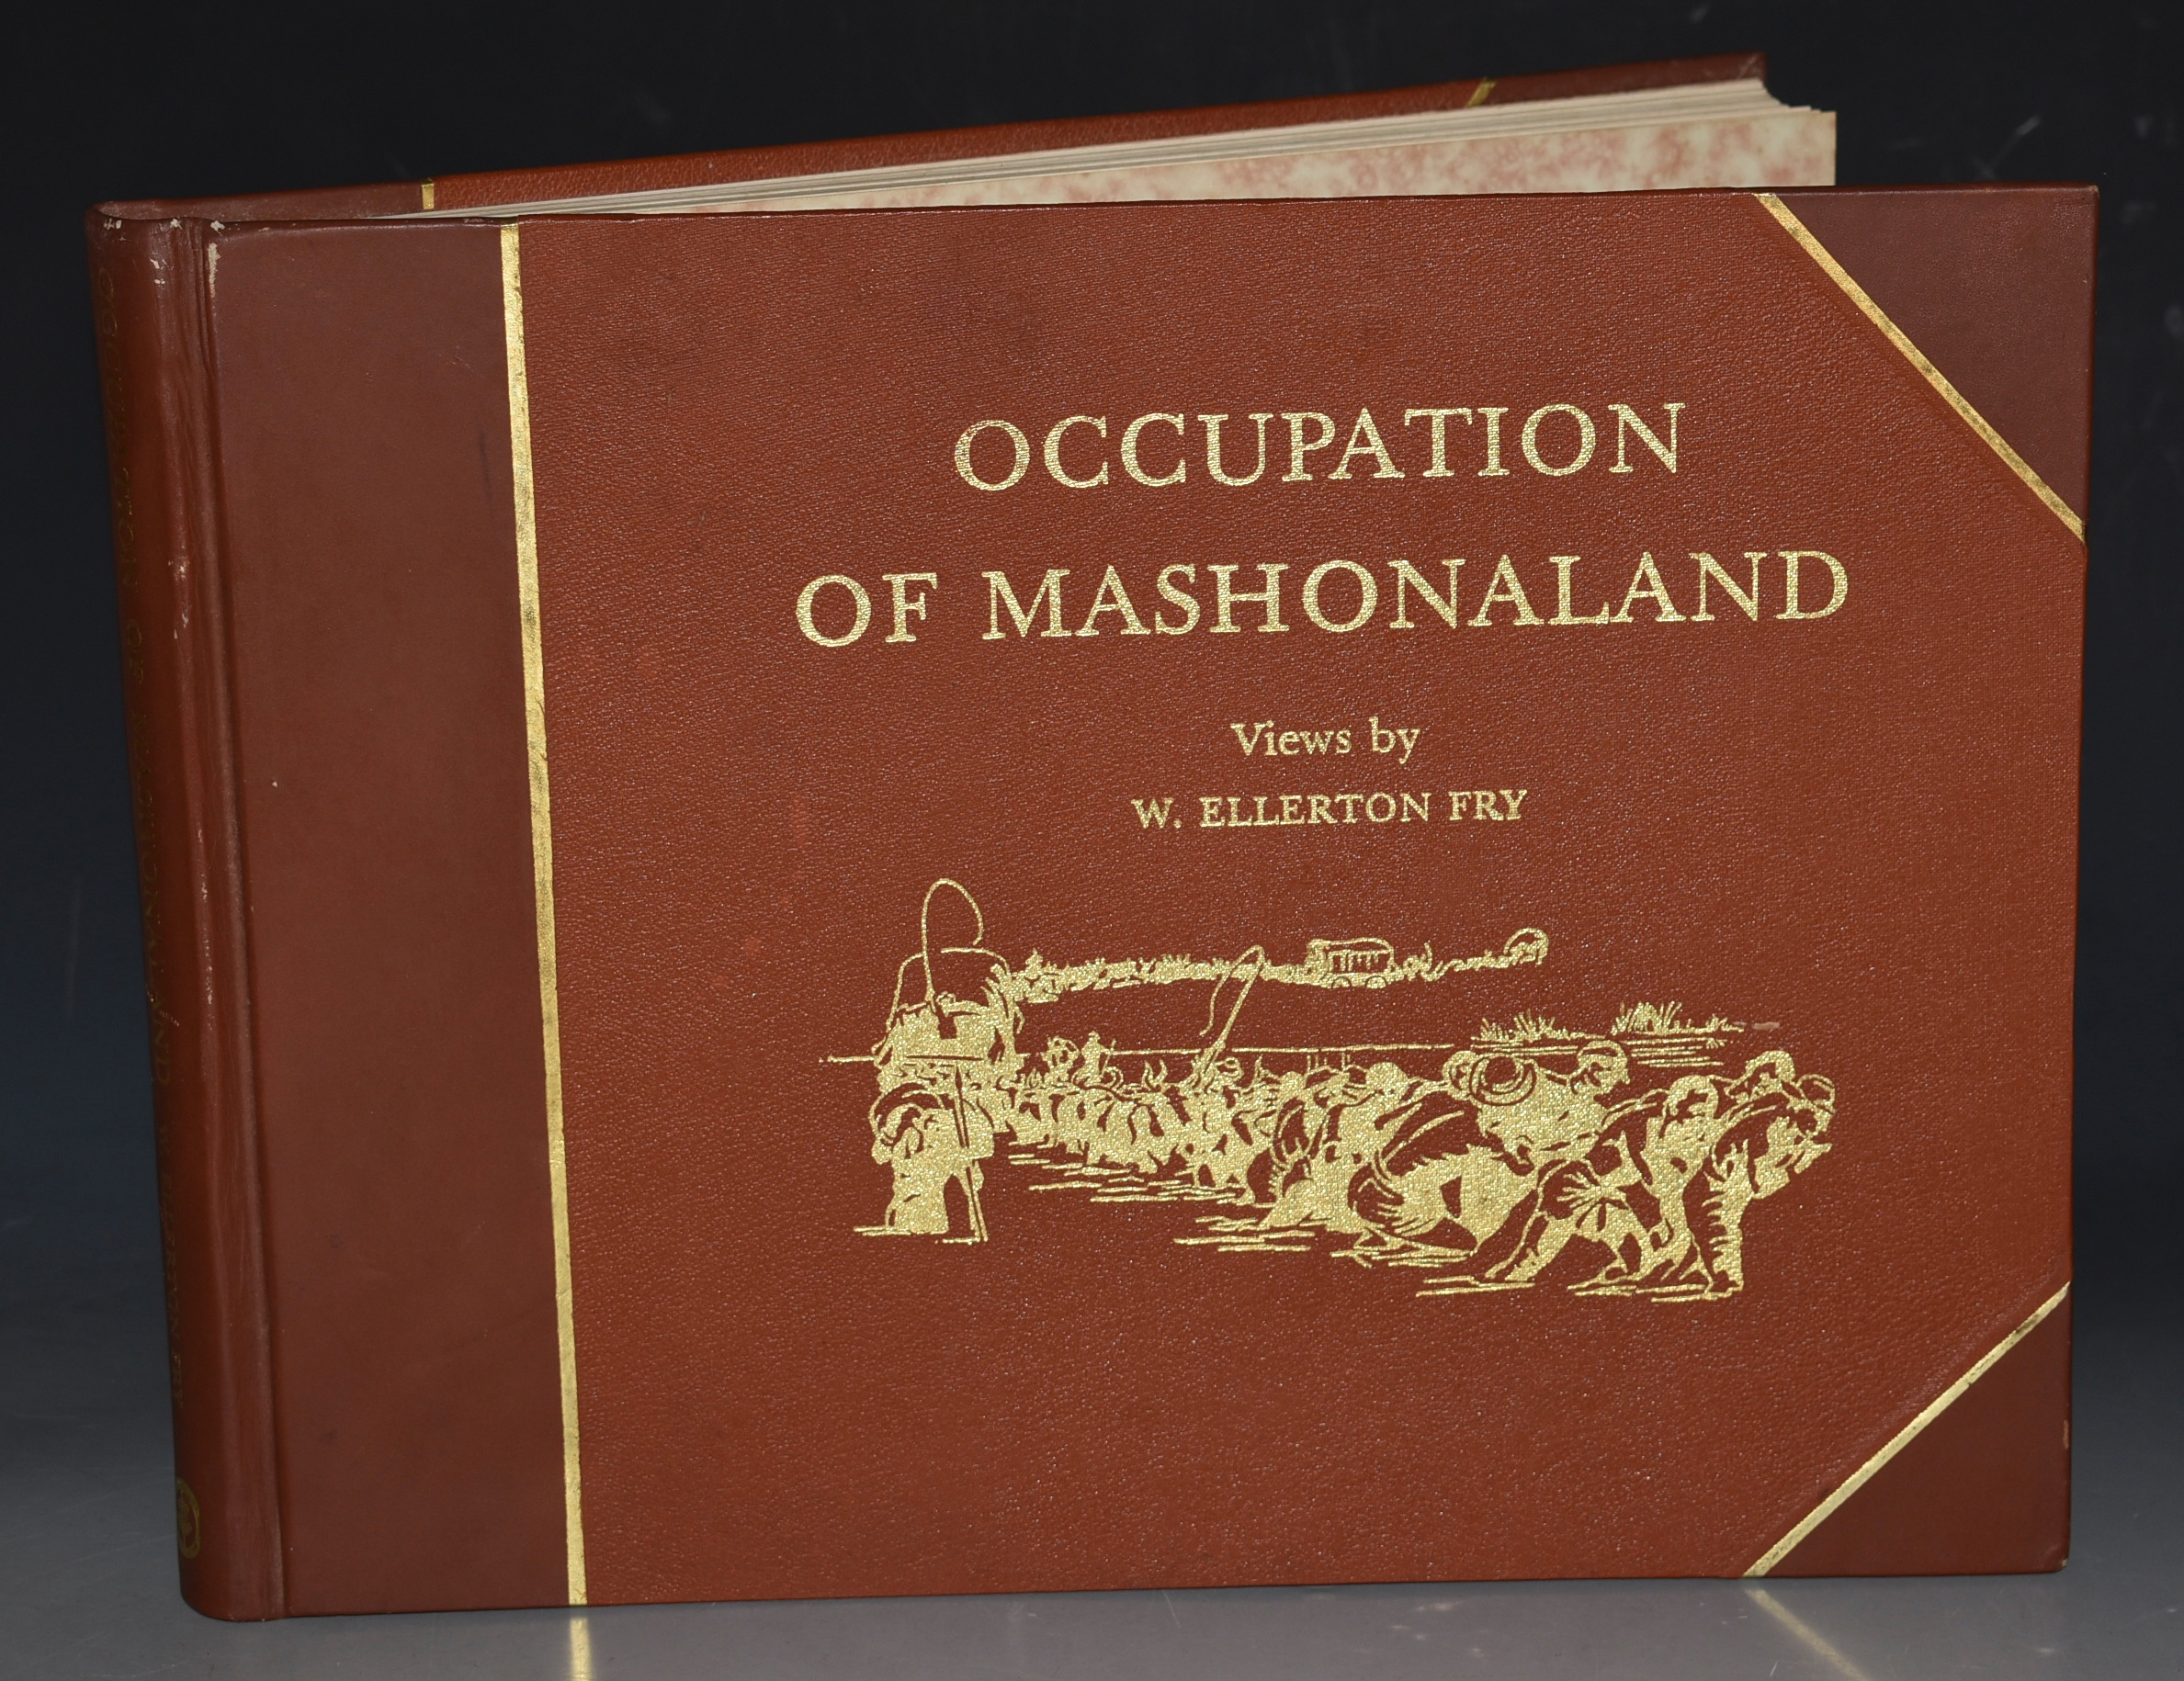 Image for OCCUPATION OF MASHONALAND. [Reprint in a smaller format, of the album of photographs taken on the Pioneer Column of 1890, and originally published in October 1891; with the addition of maps; and new text, captions and a Bibliography prepared by Peter McLaughlin].